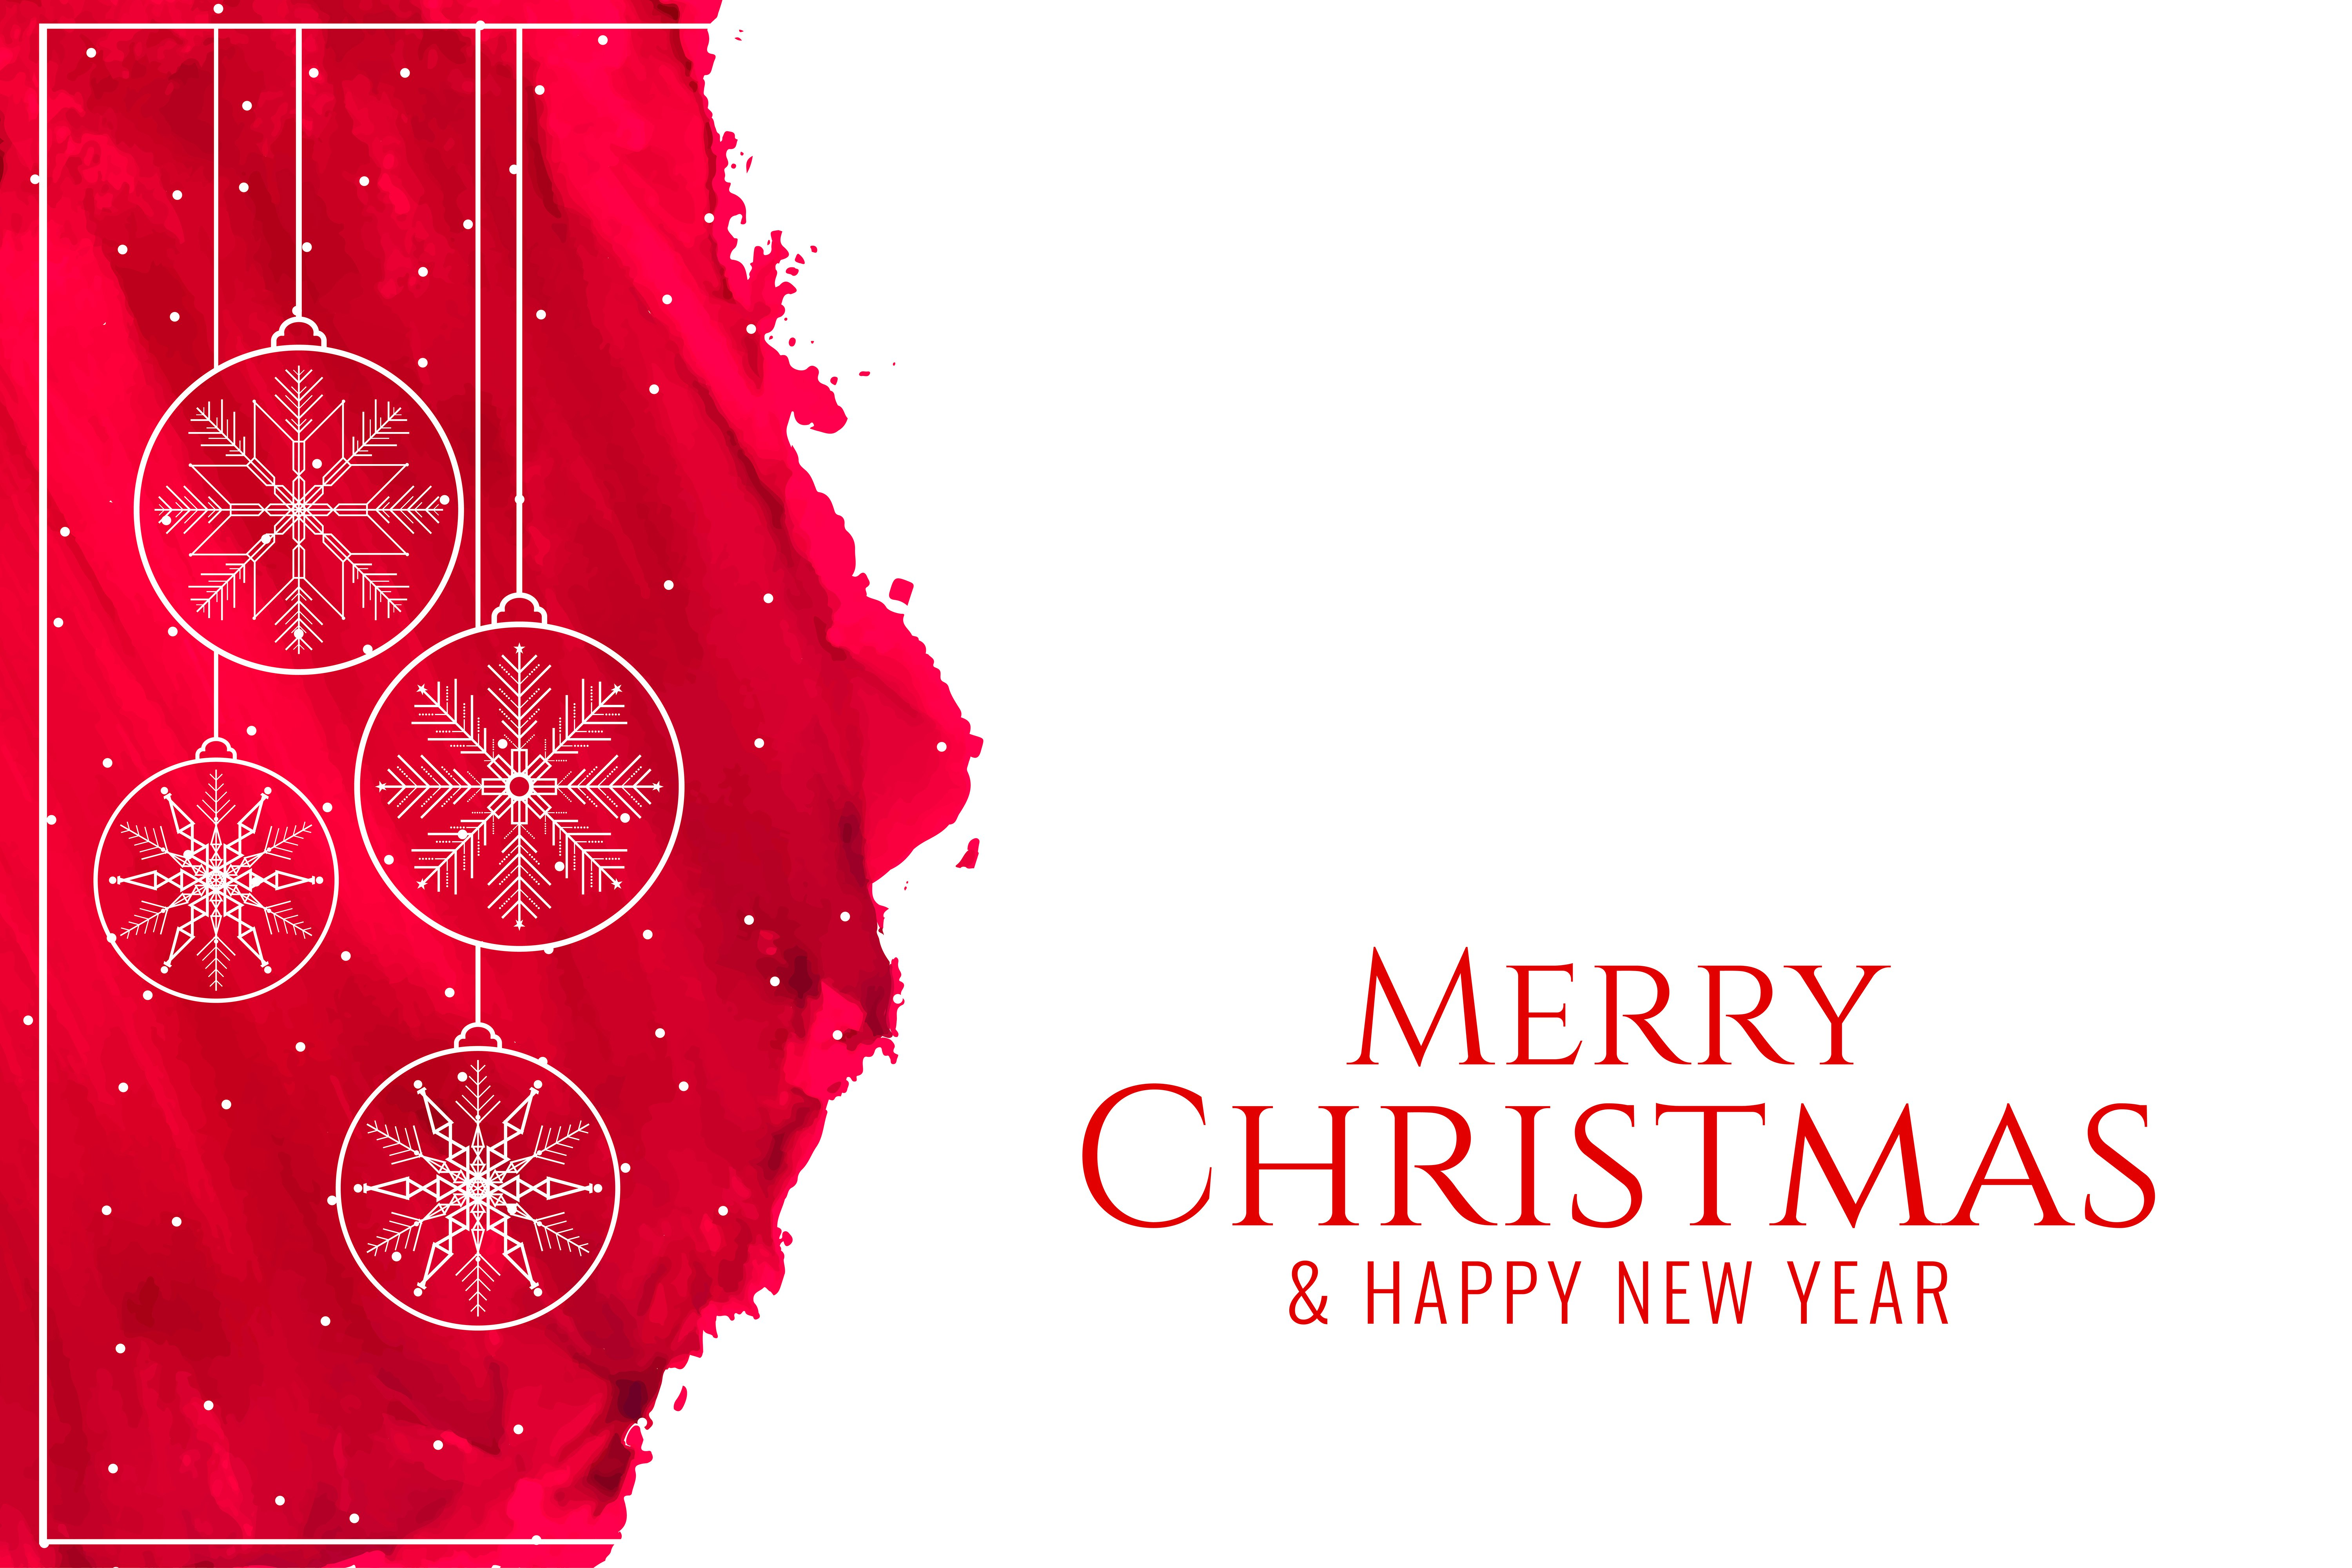 Merry Christmas and Happy New Year 2020 wallpapers 6000x4000